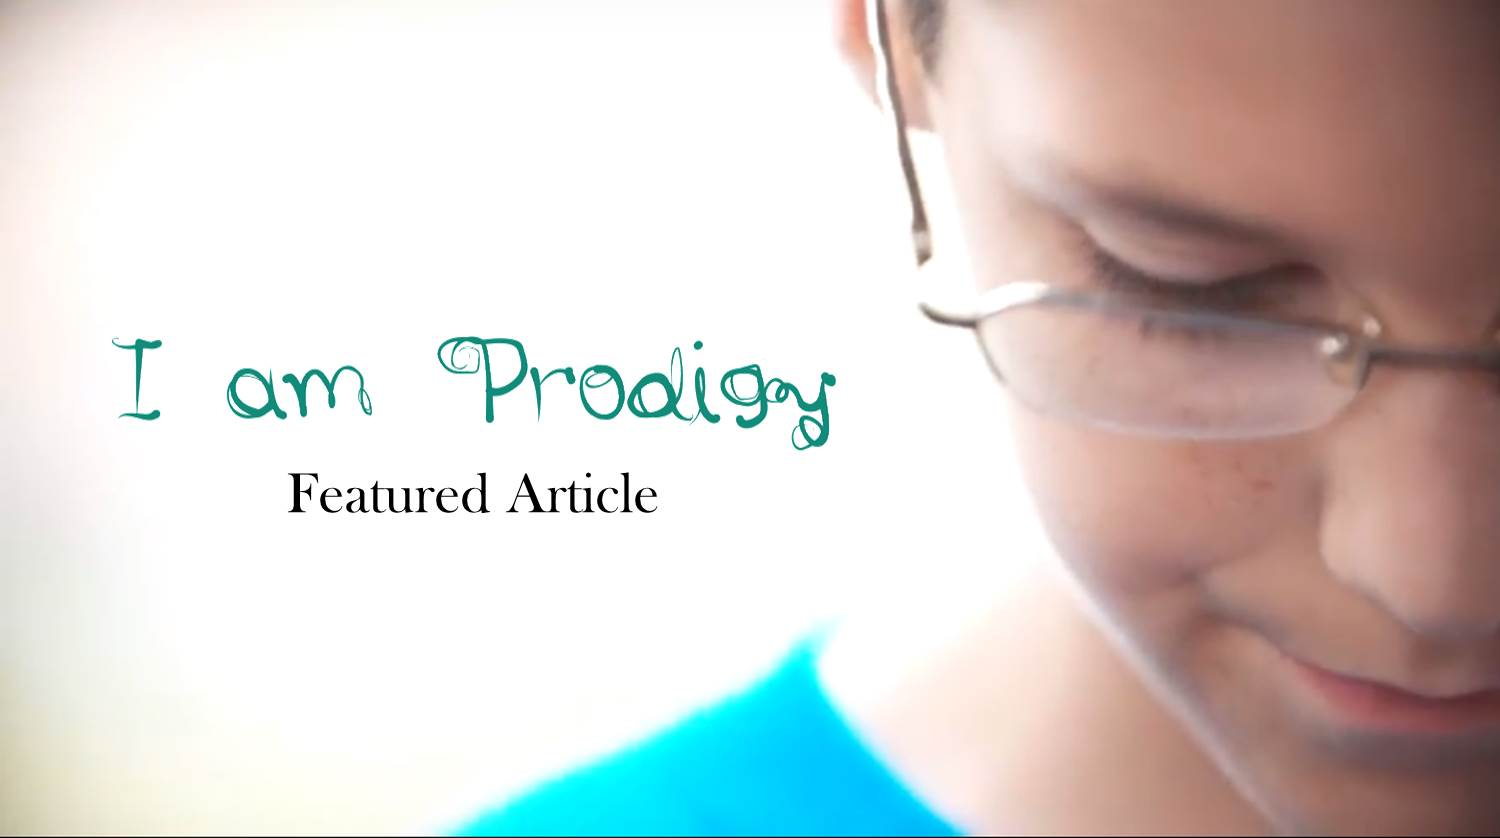 I am Prodigy featured article